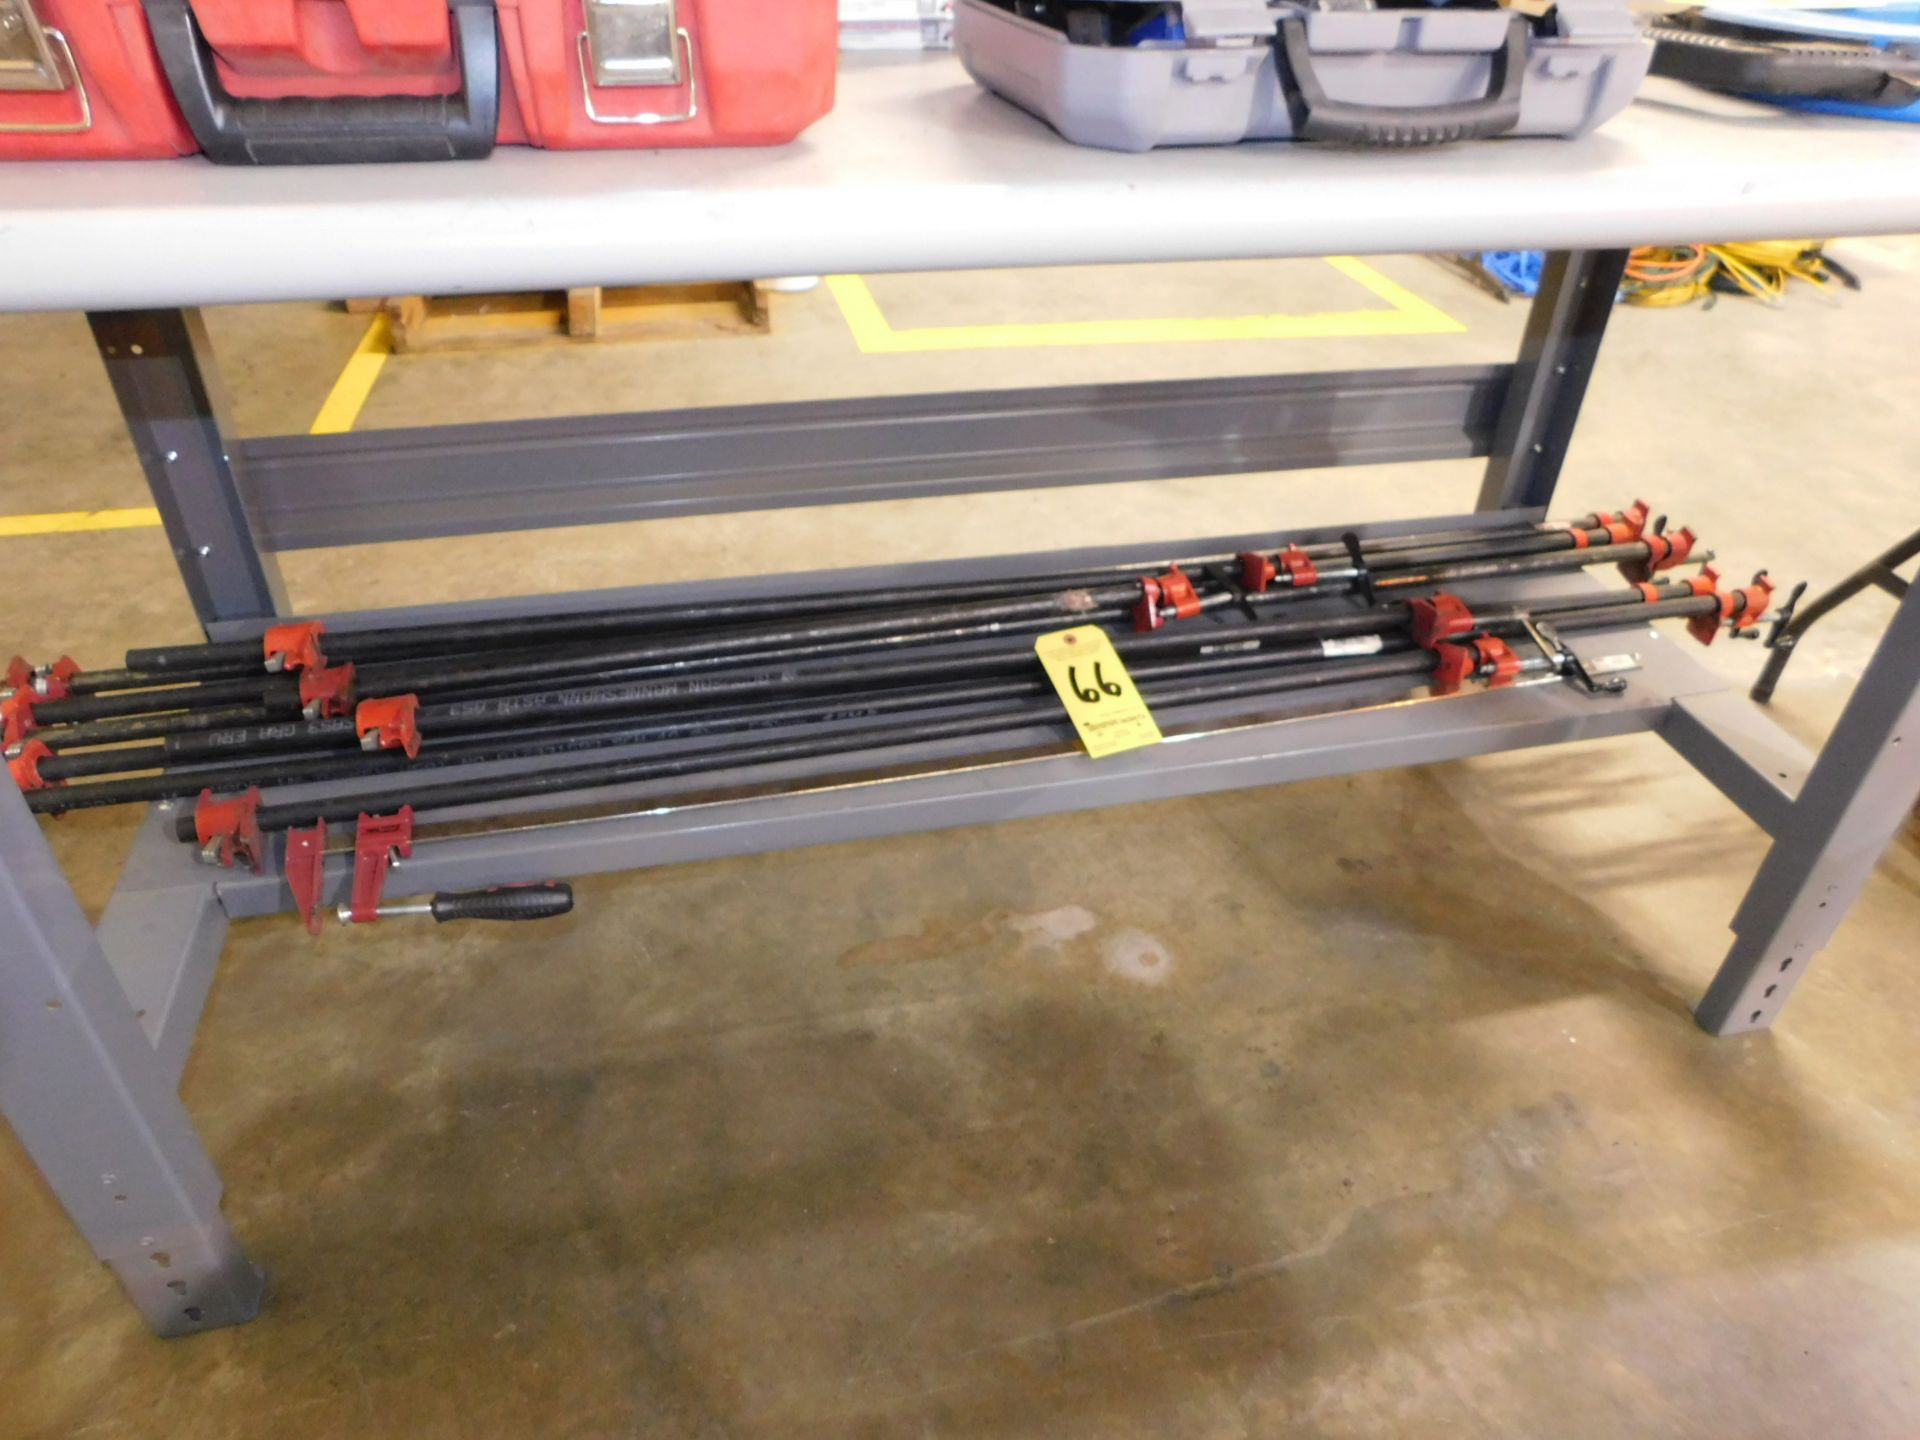 Lot 66 - Bar Clamps, Lot Location 3204 Olympia Dr. A, Lafayette, IN 47909